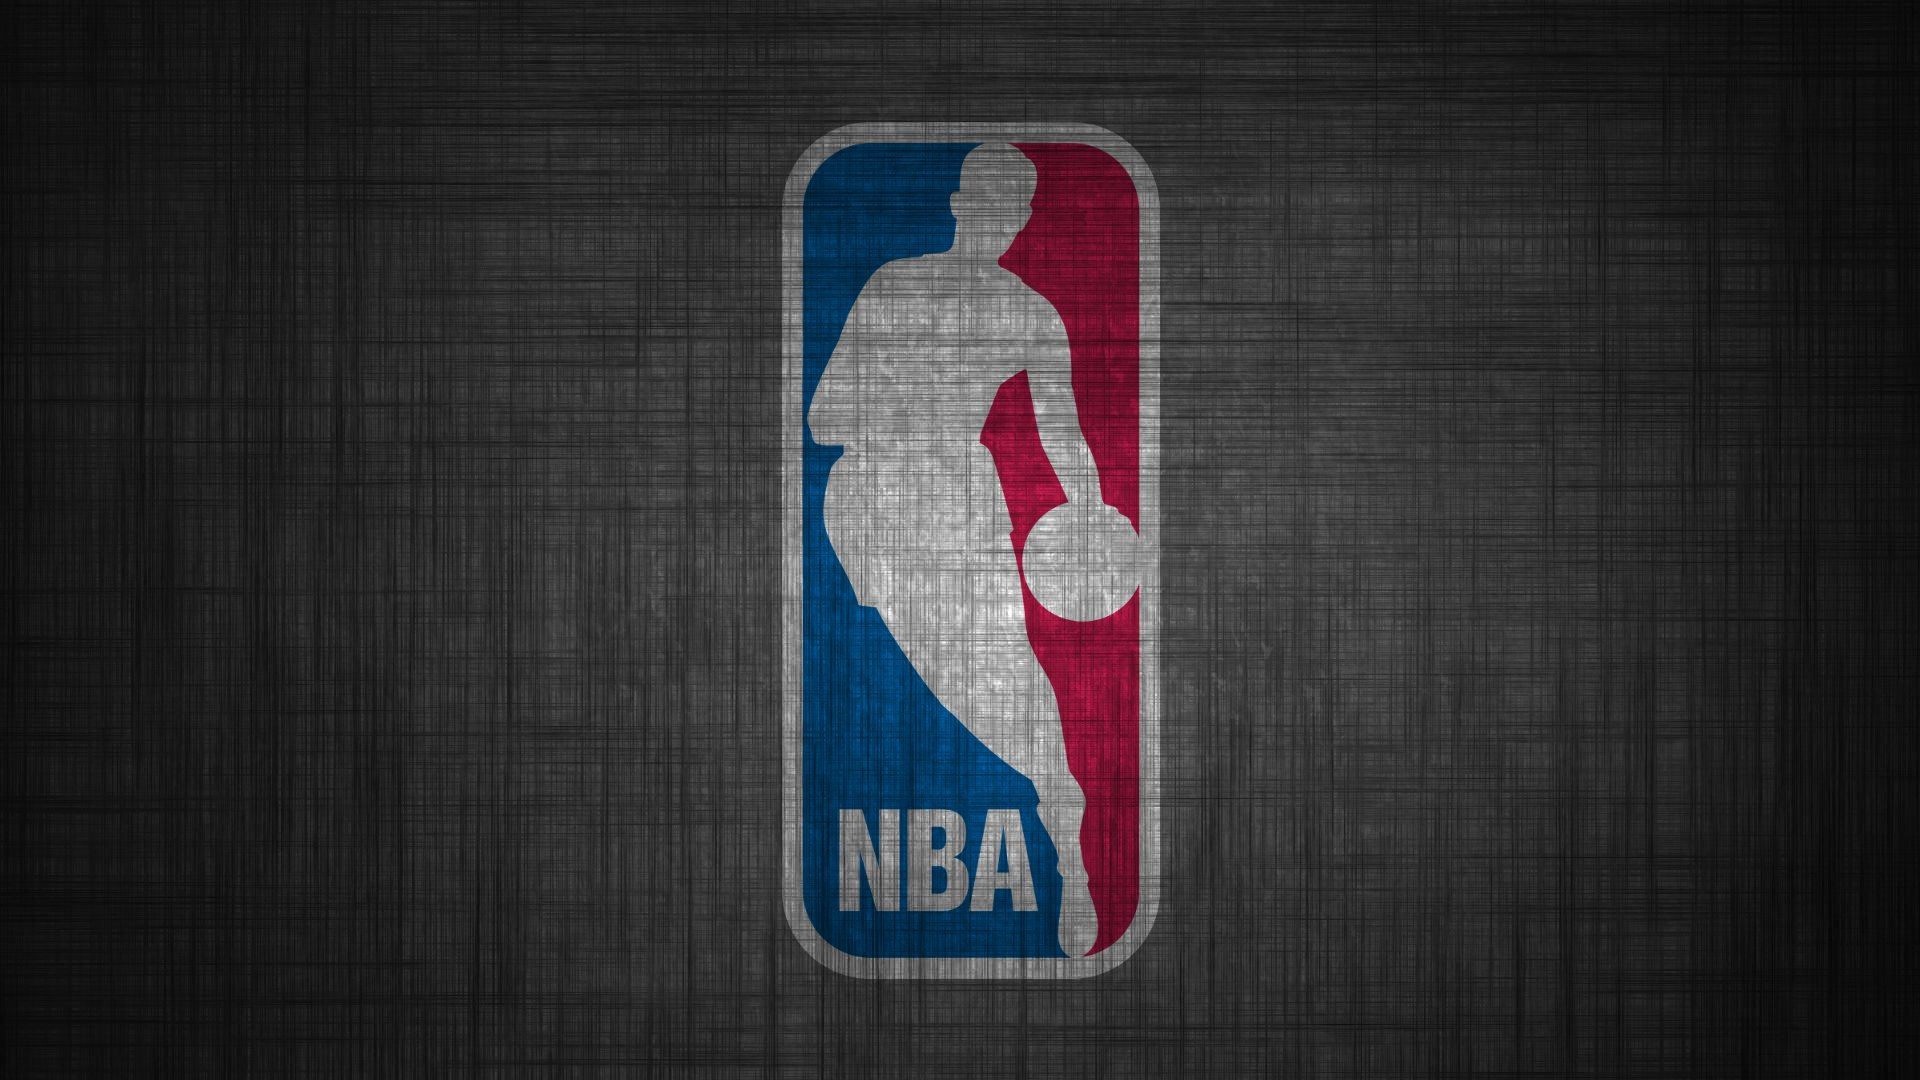 Nba Logo Wallpaper - WallpaperSafari